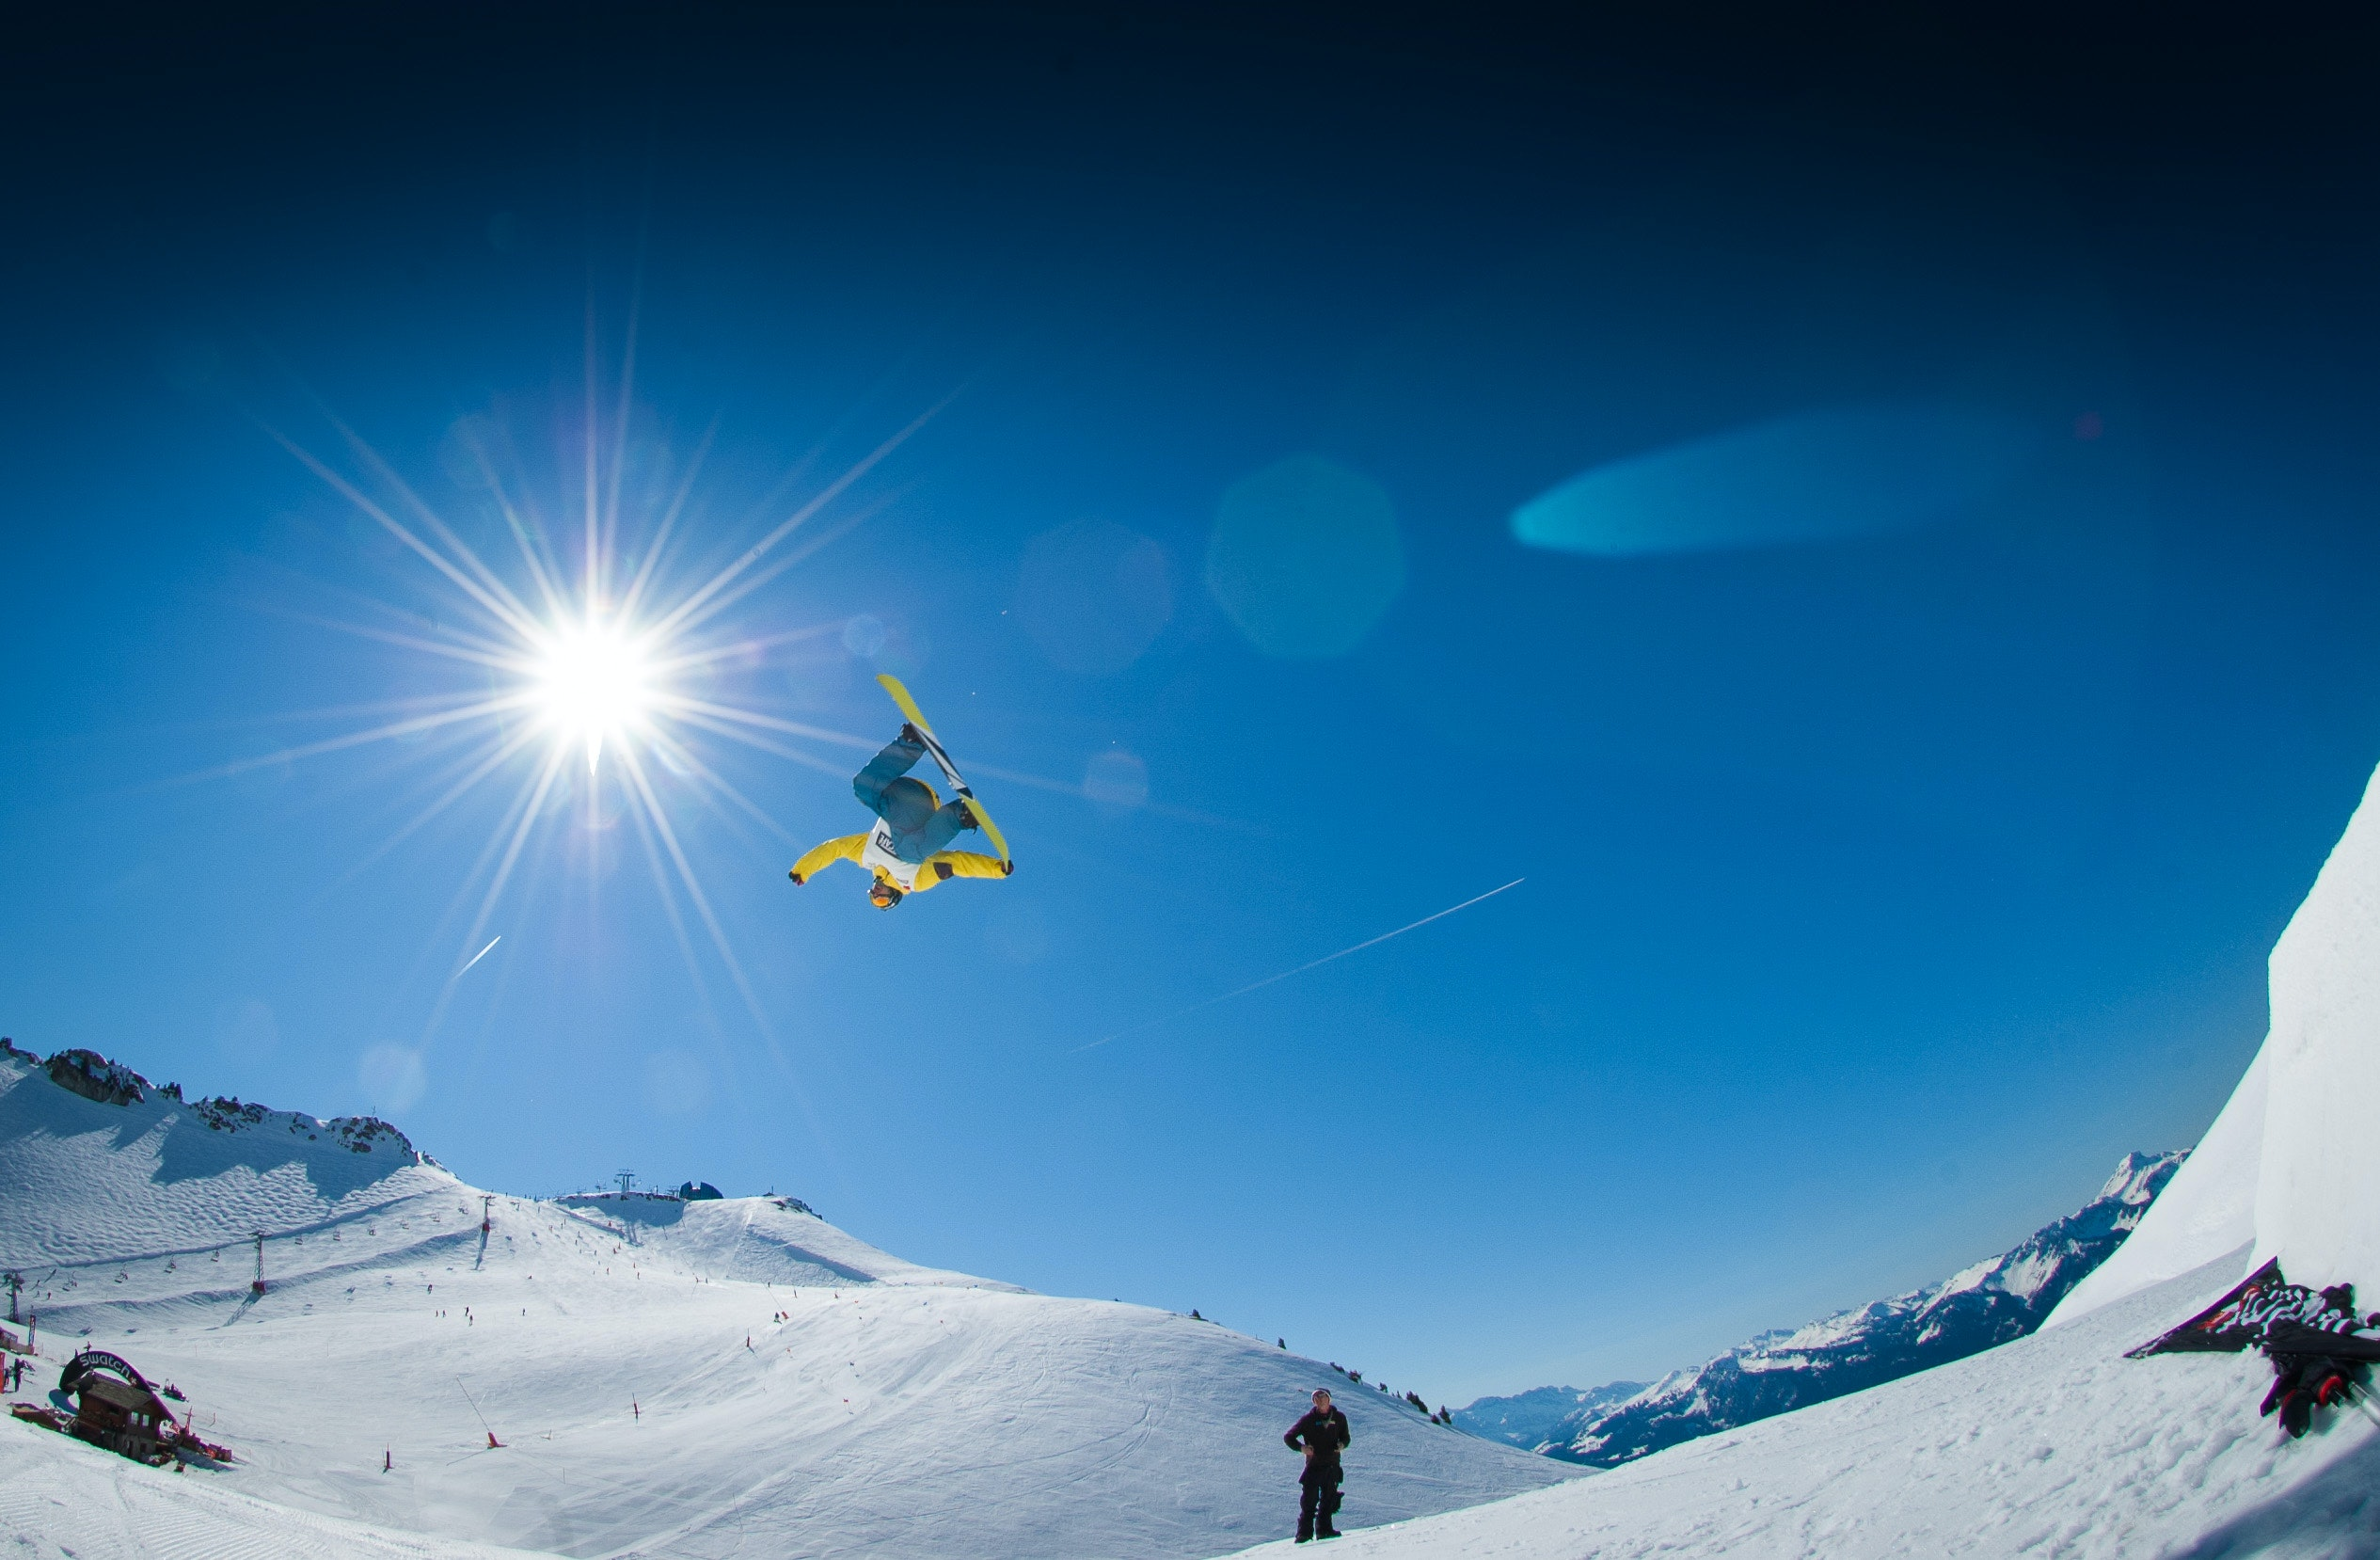 Alpine Skiing And Snowboarding: Most Popular Sports